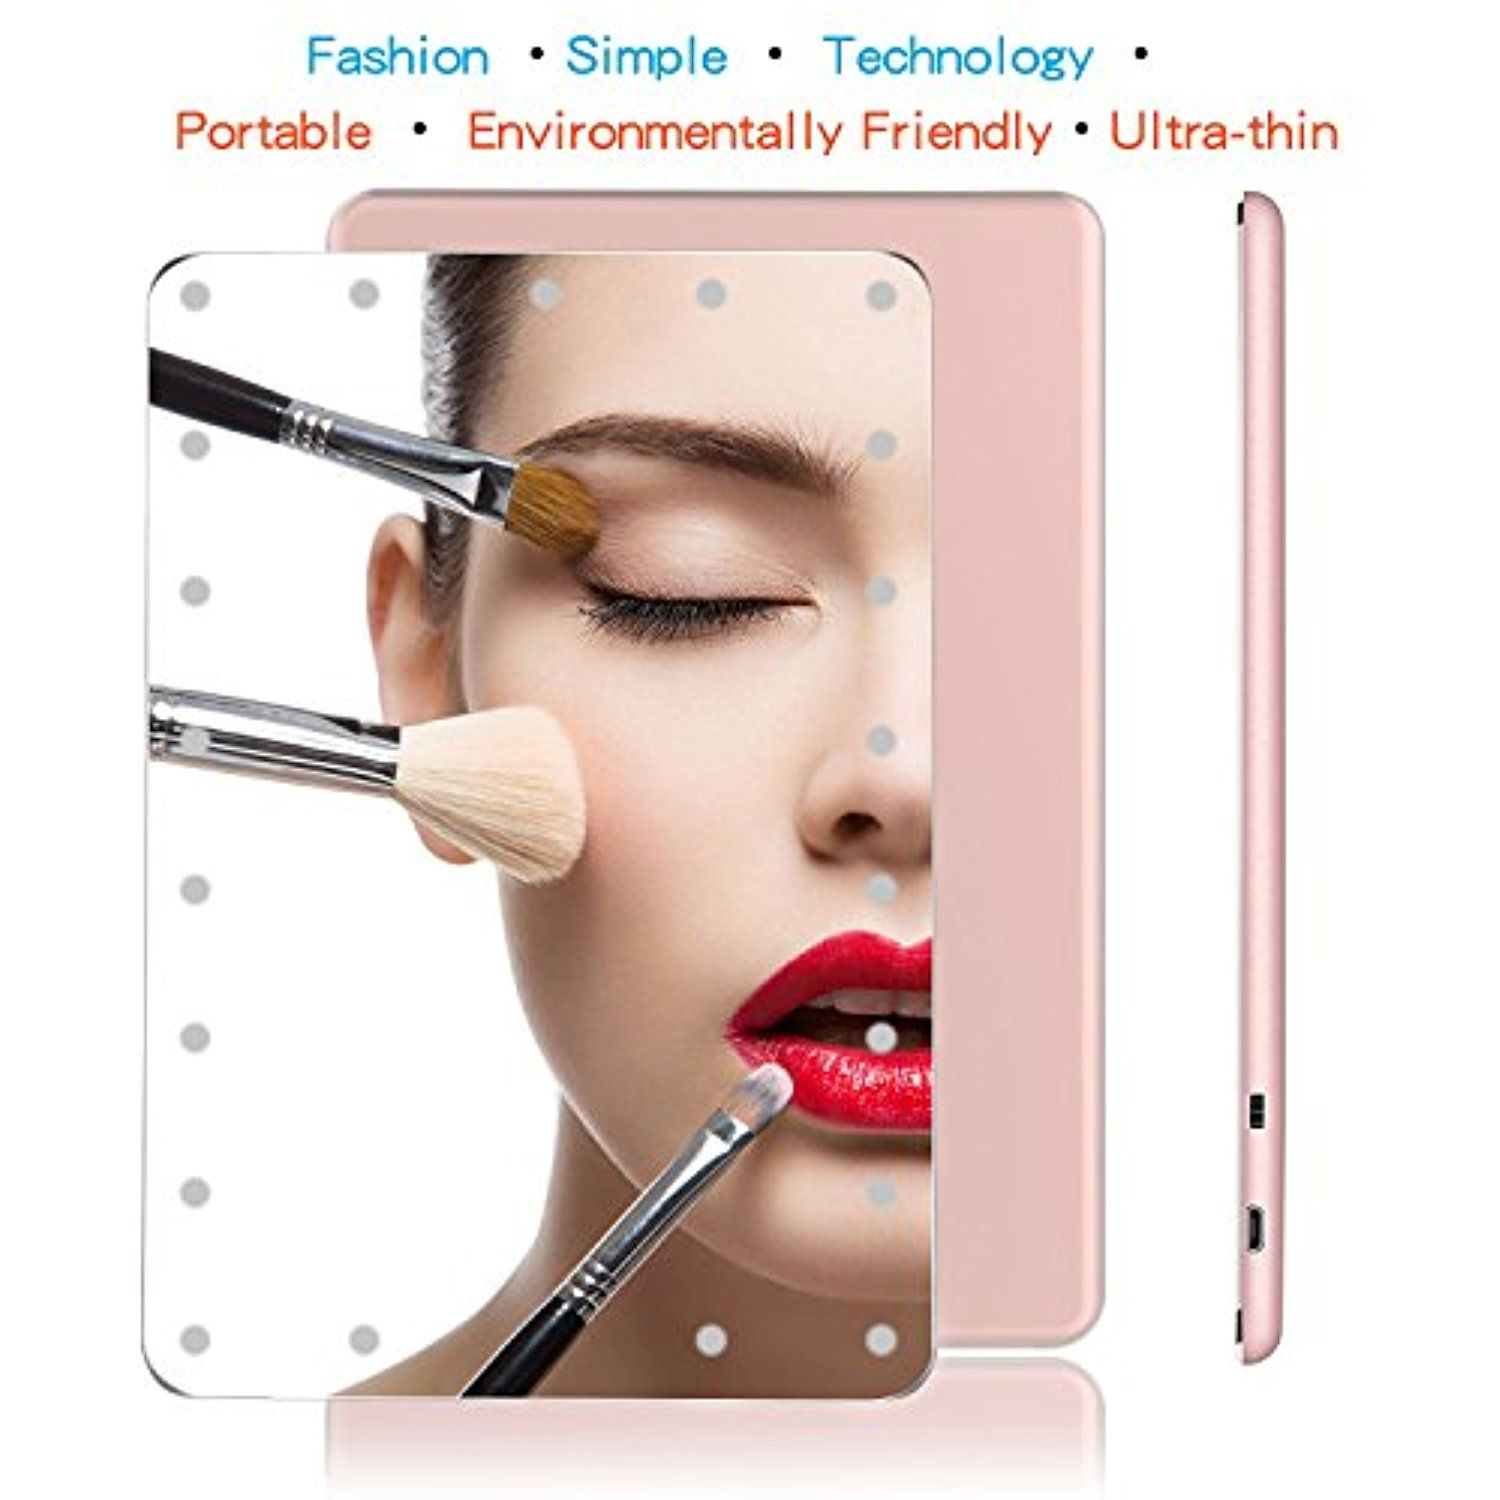 Makeup Mirror with Lights, Hollywood Compact Travel Vanity